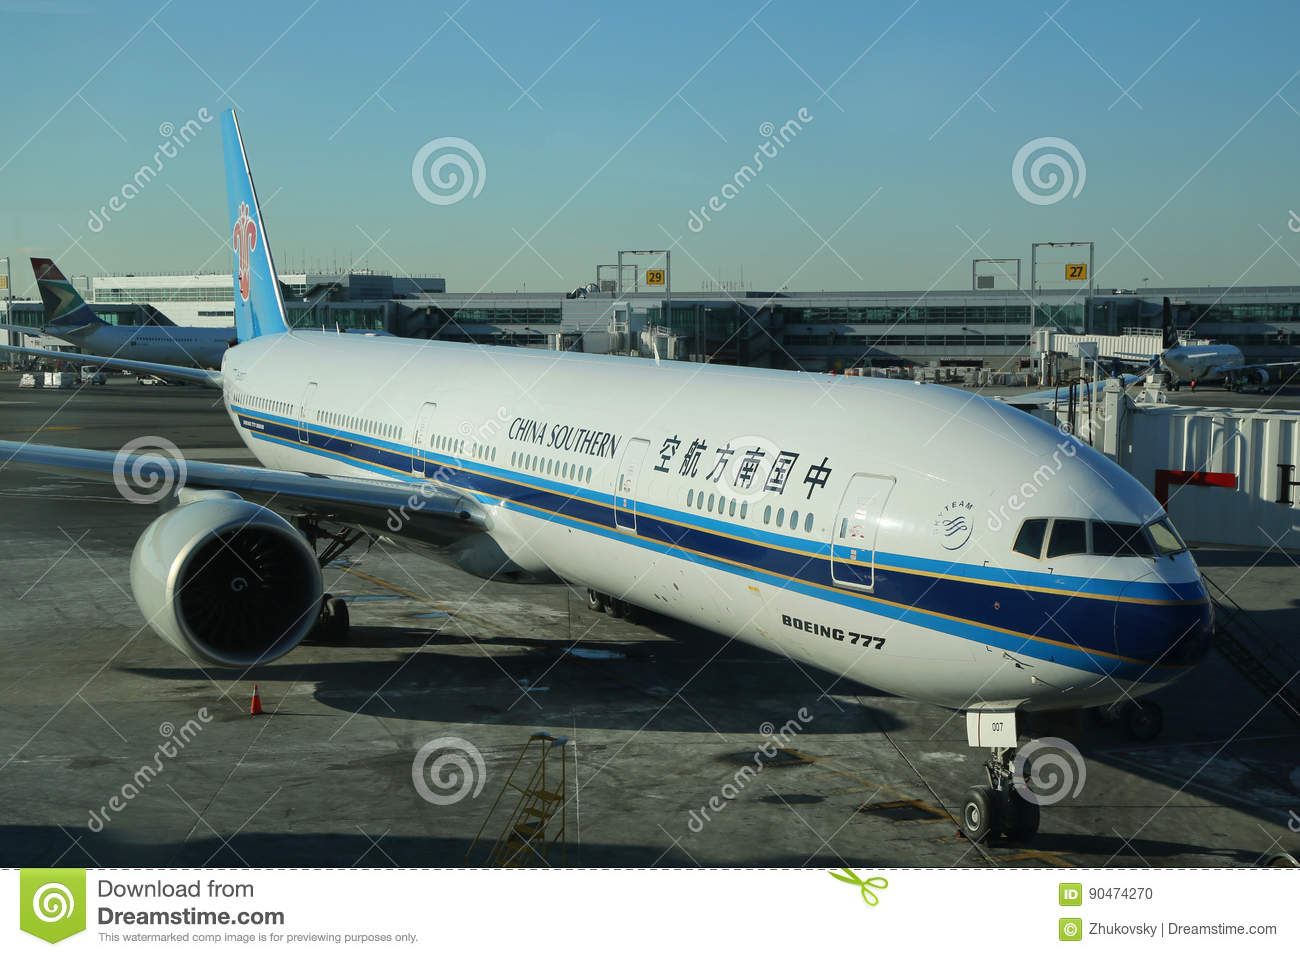 China Southern Boeing 777 on tarmac